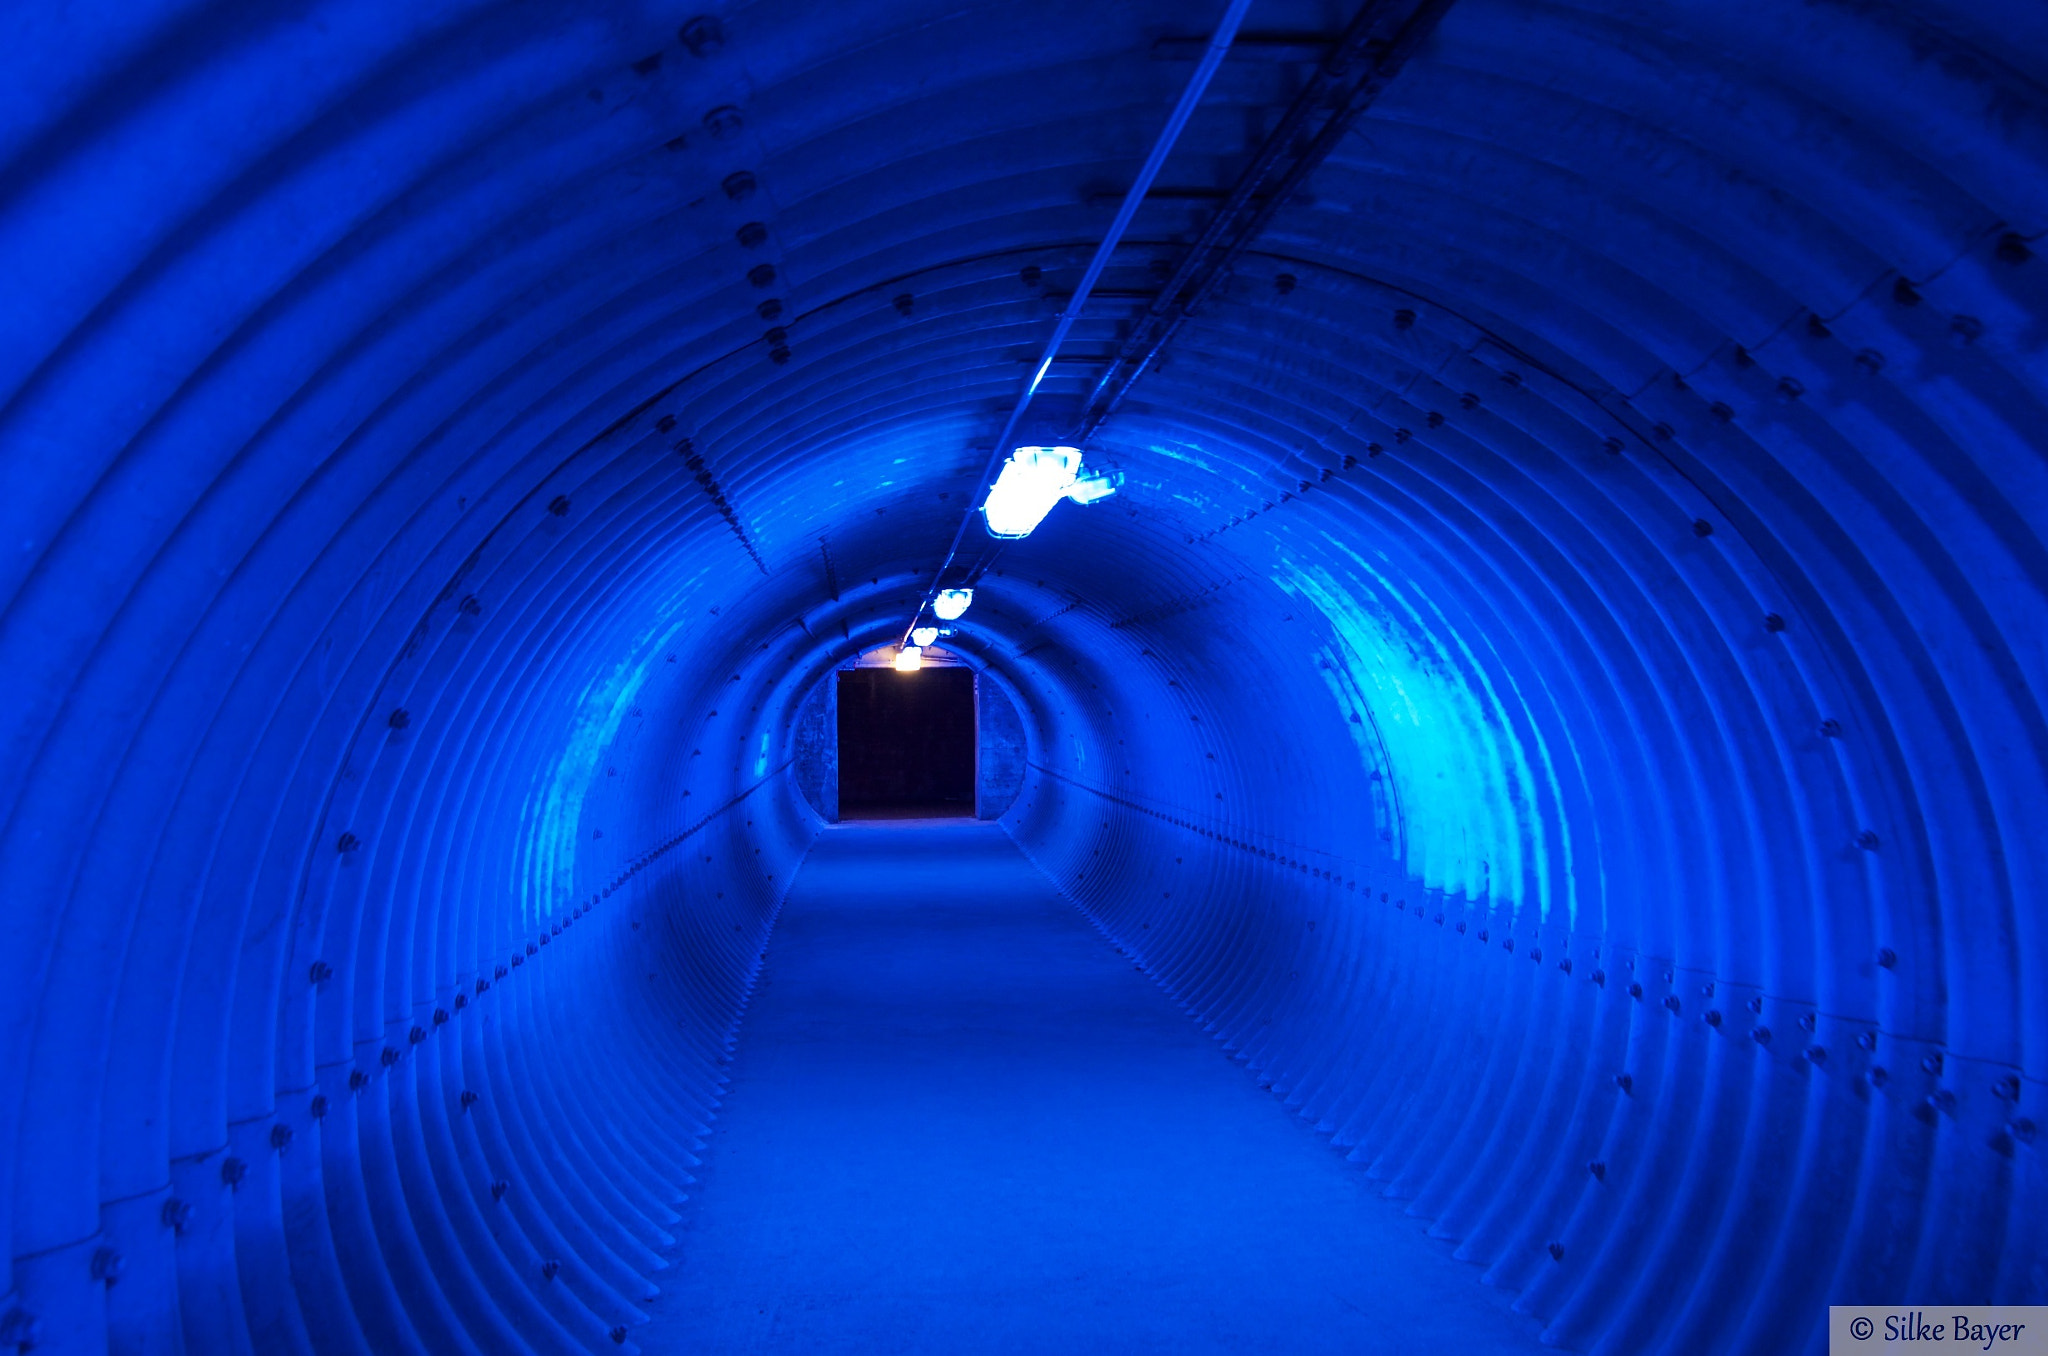 Photograph Blauer Tunnel by Silke Bayer on 500px